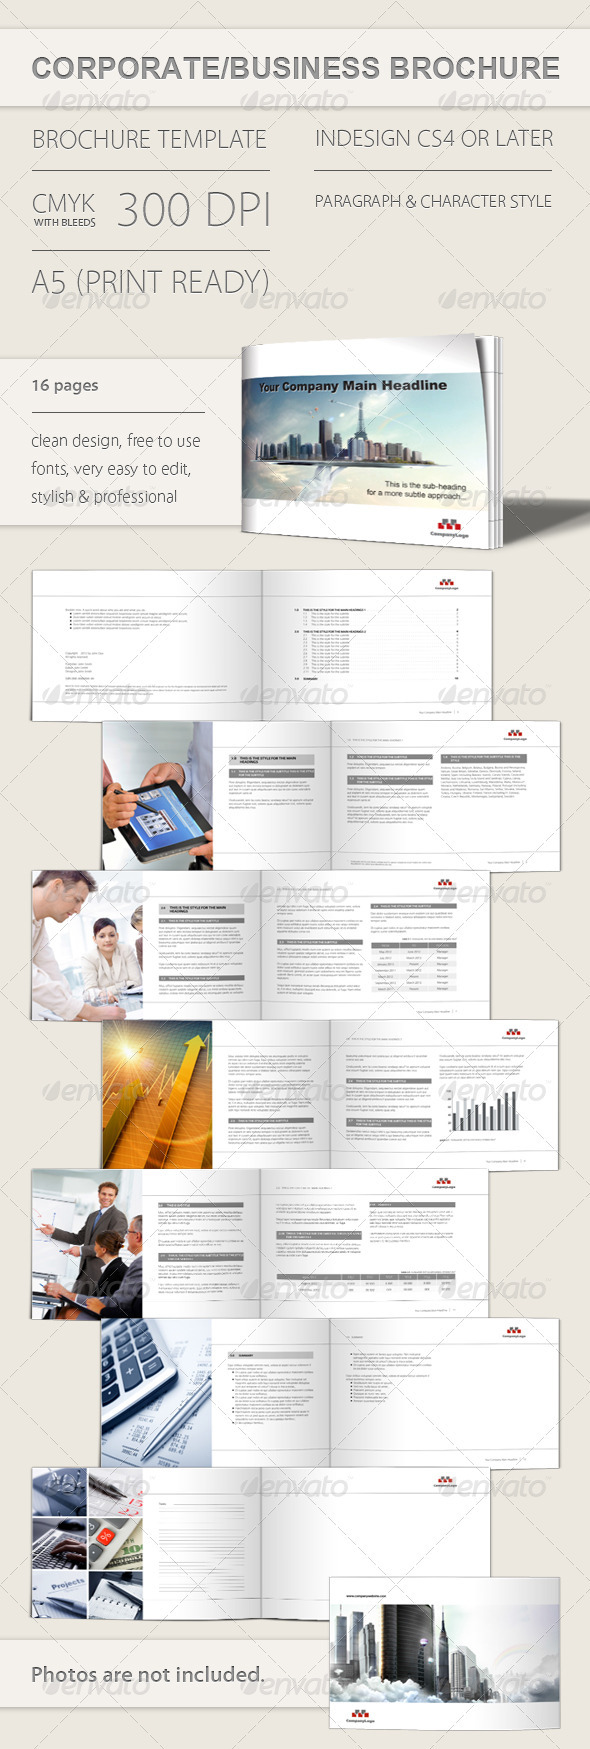 Corporate and Business Brochure - Corporate Brochures